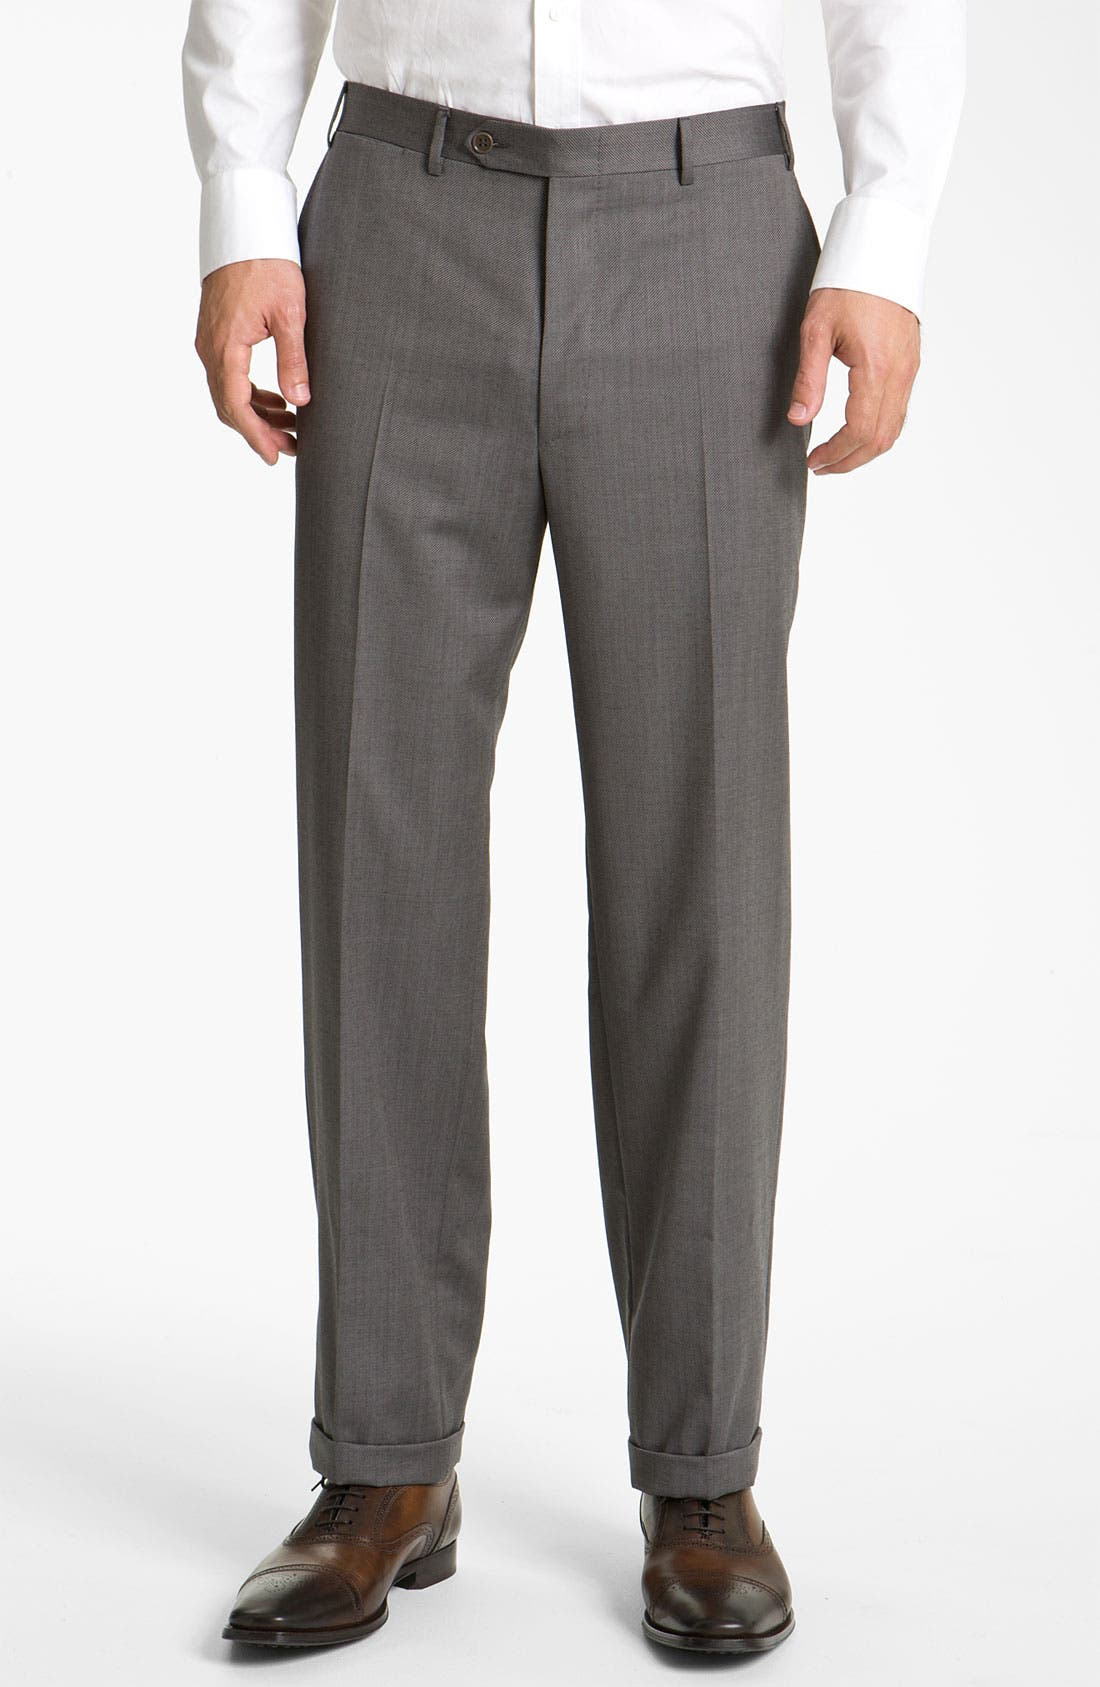 CANALI, Flat Front Wool Trousers, Main thumbnail 1, color, GREY